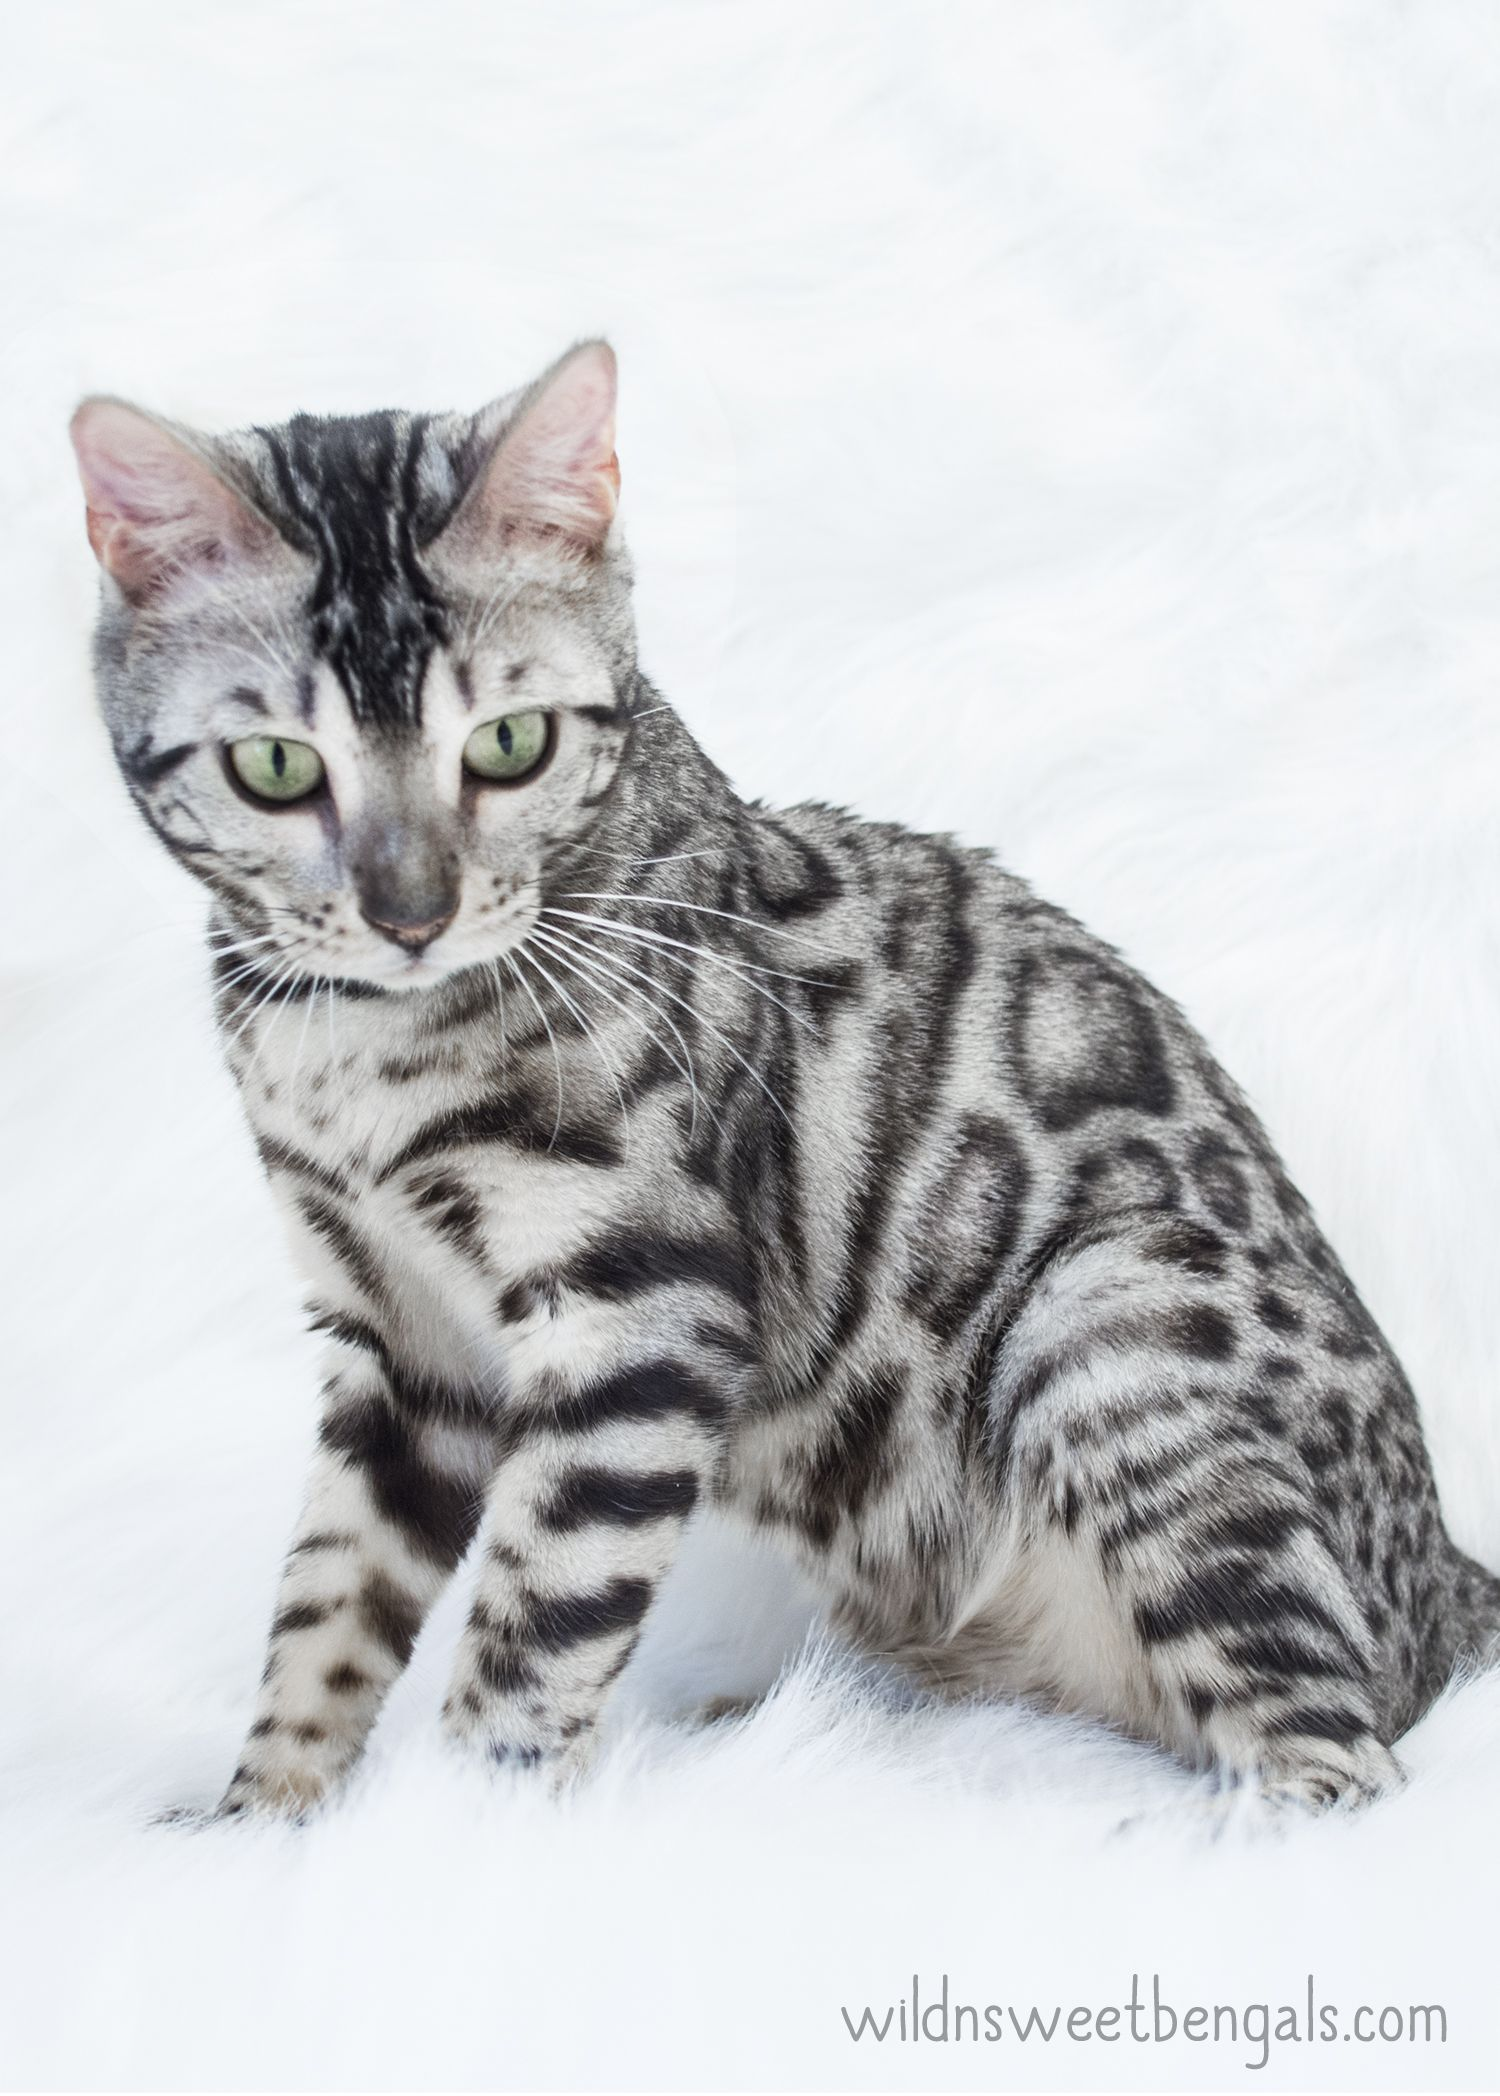 One of our beautiful silver bengal queens at Wild N Sweet